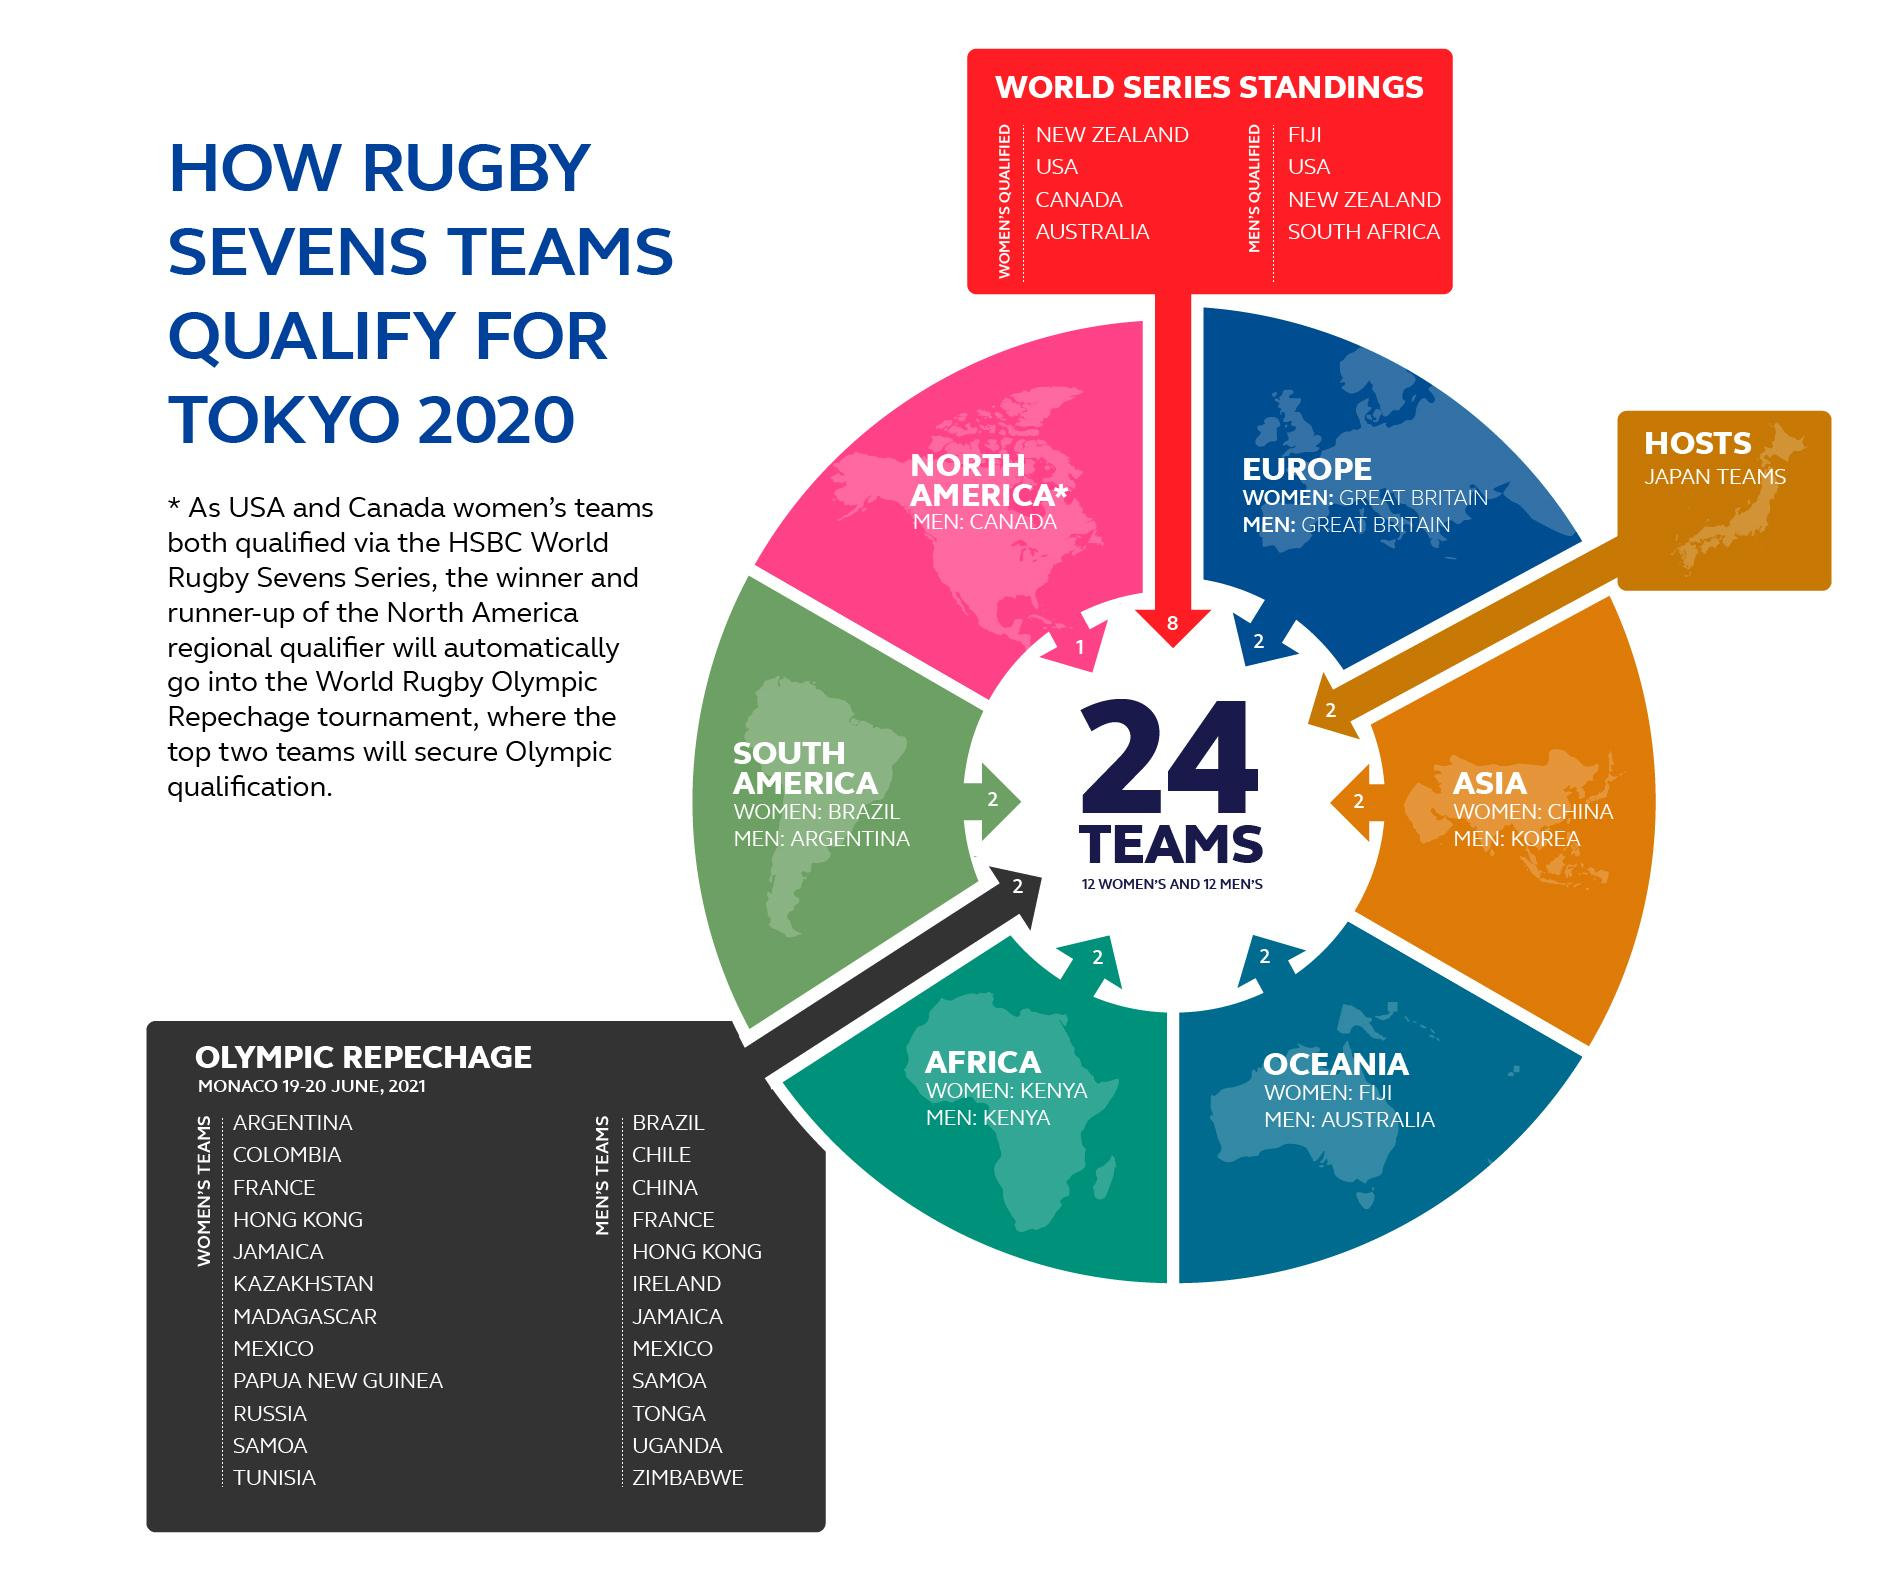 http://www.worldrugby.org/photos/586886